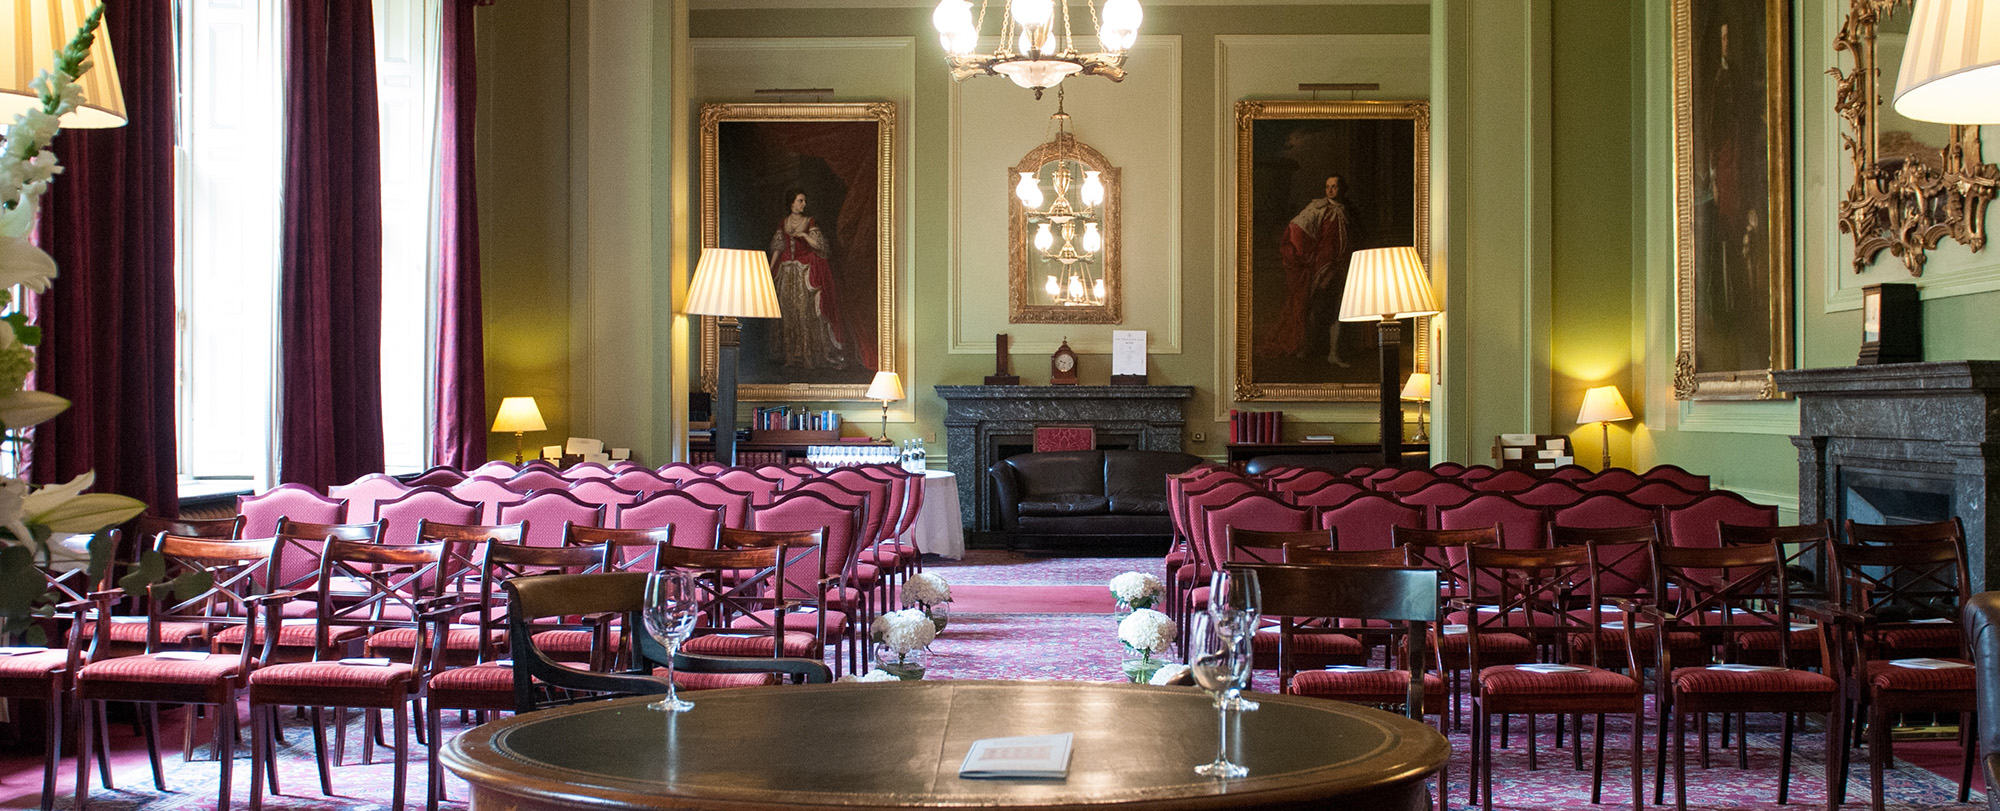 106 Pall Mall green drawing room for hire